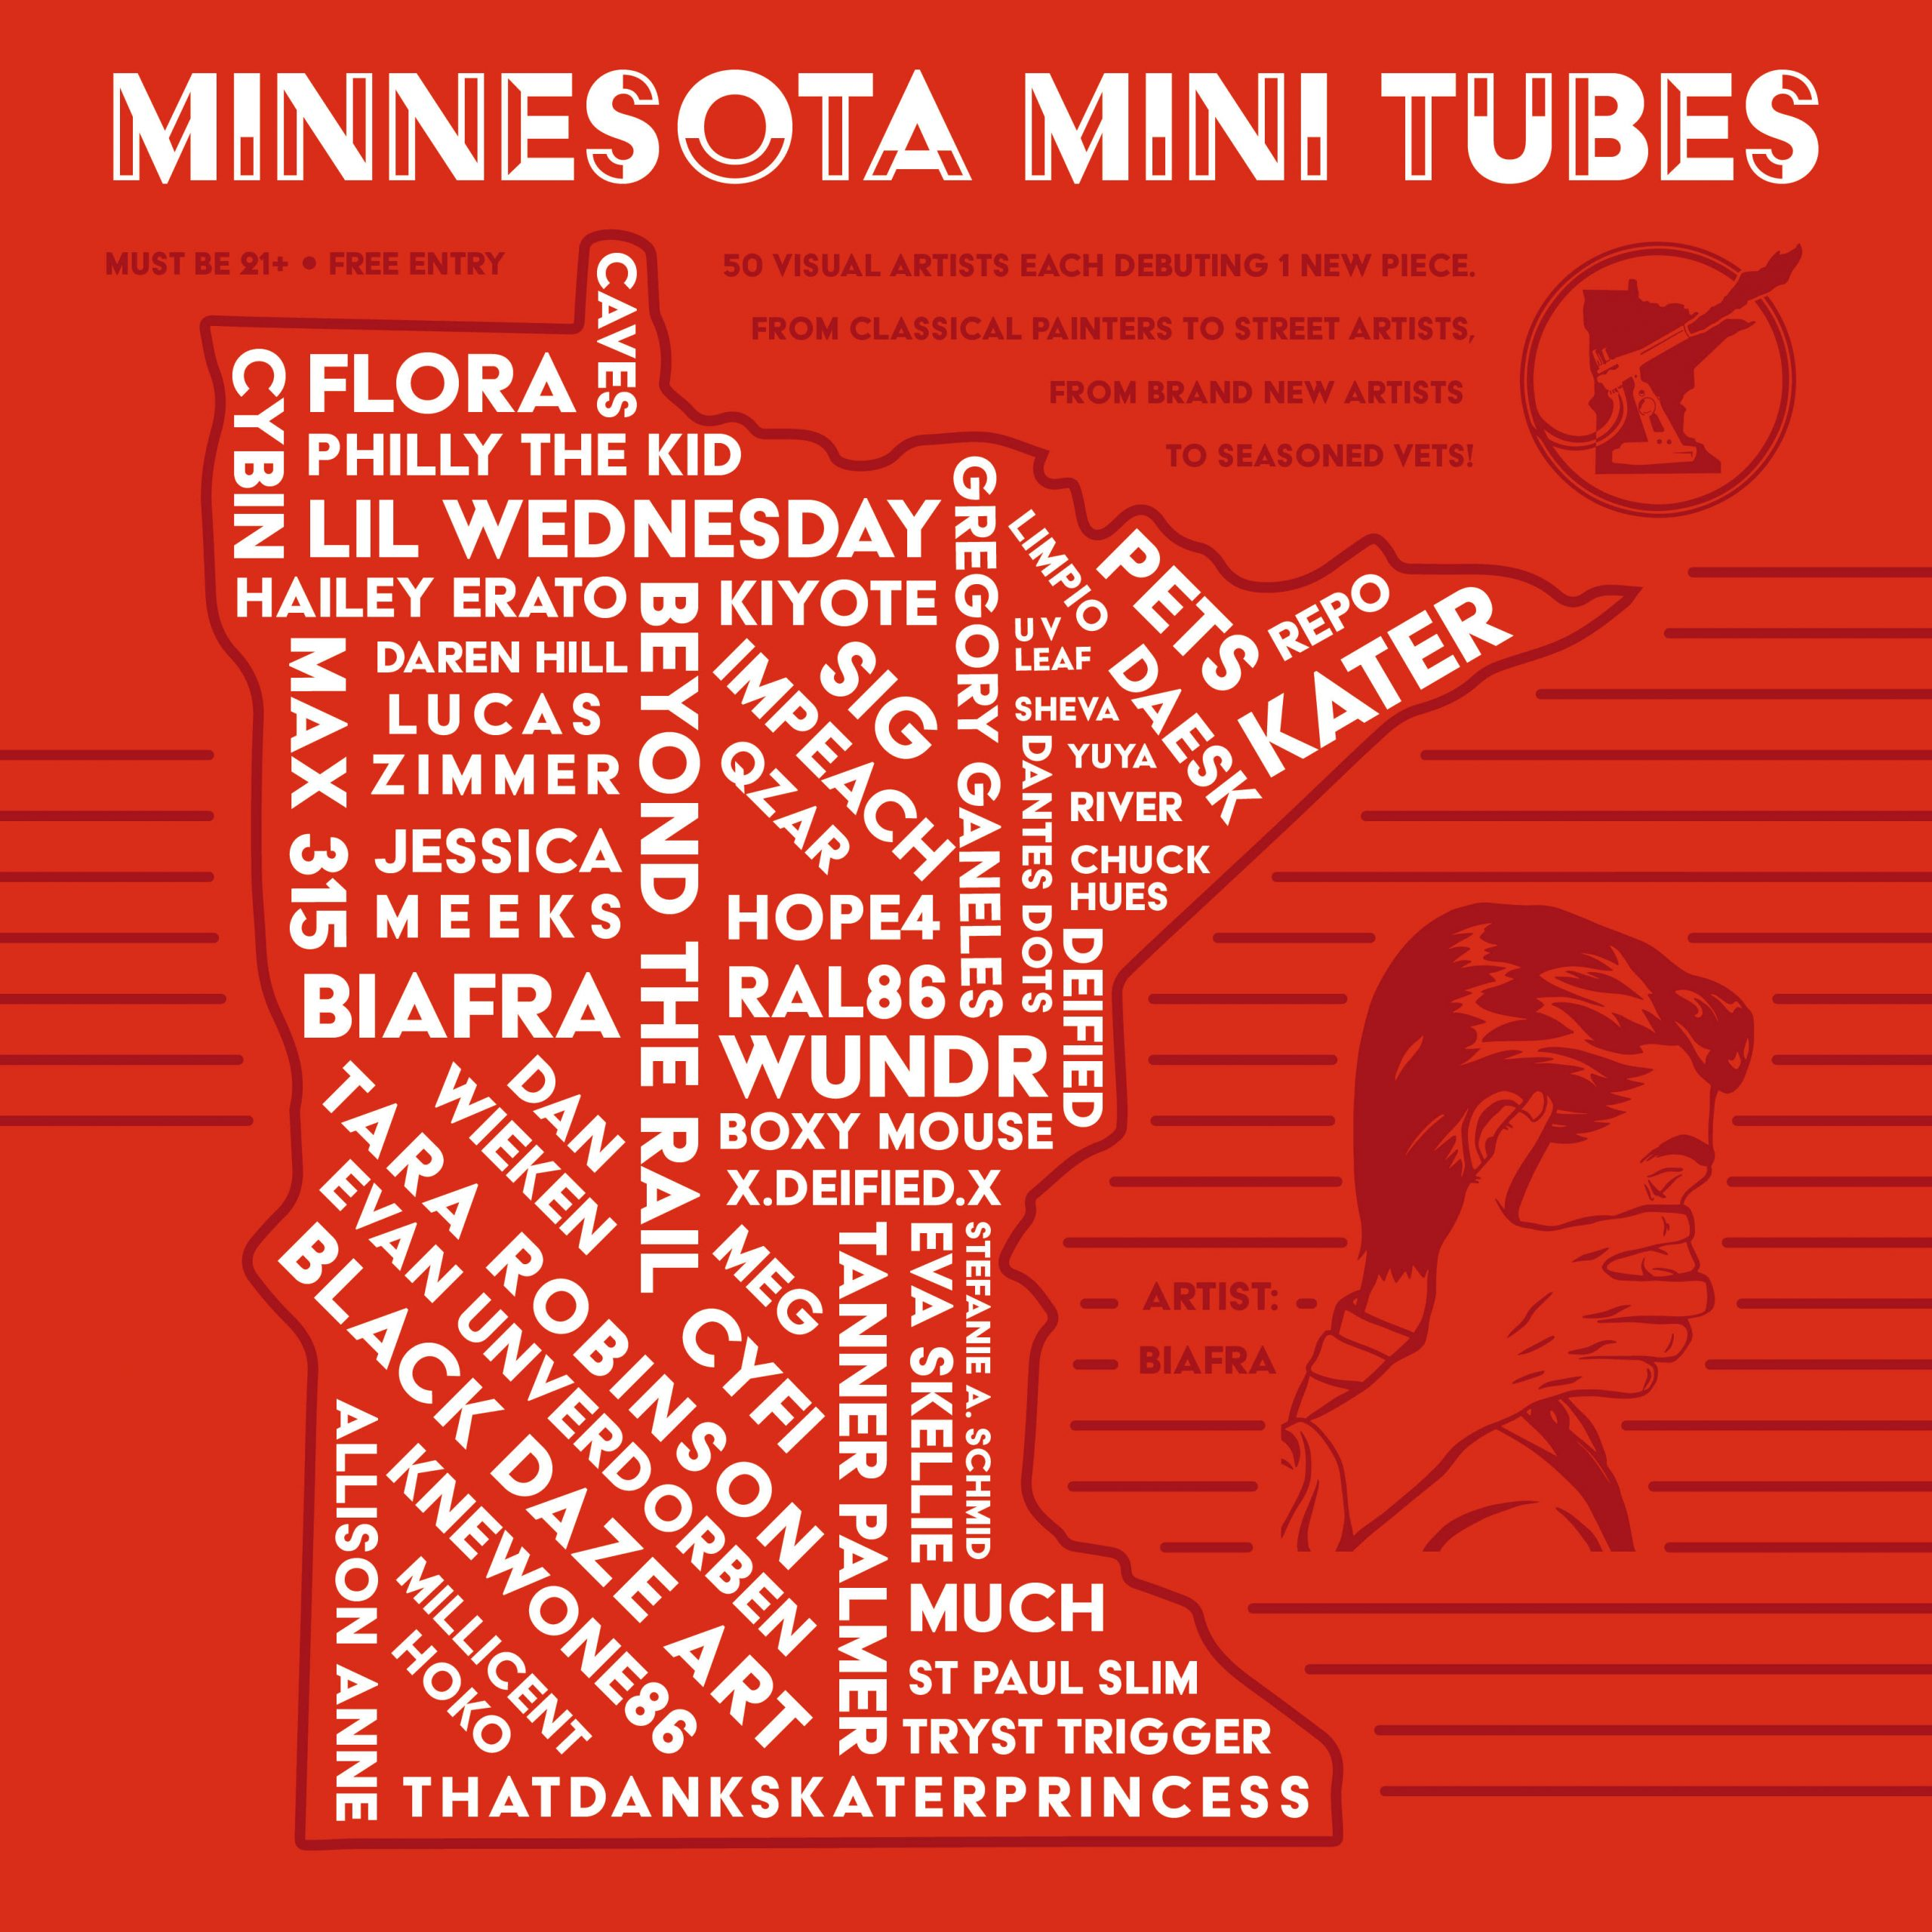 Showing: MN Mini Tubes at Legacy Glassworks